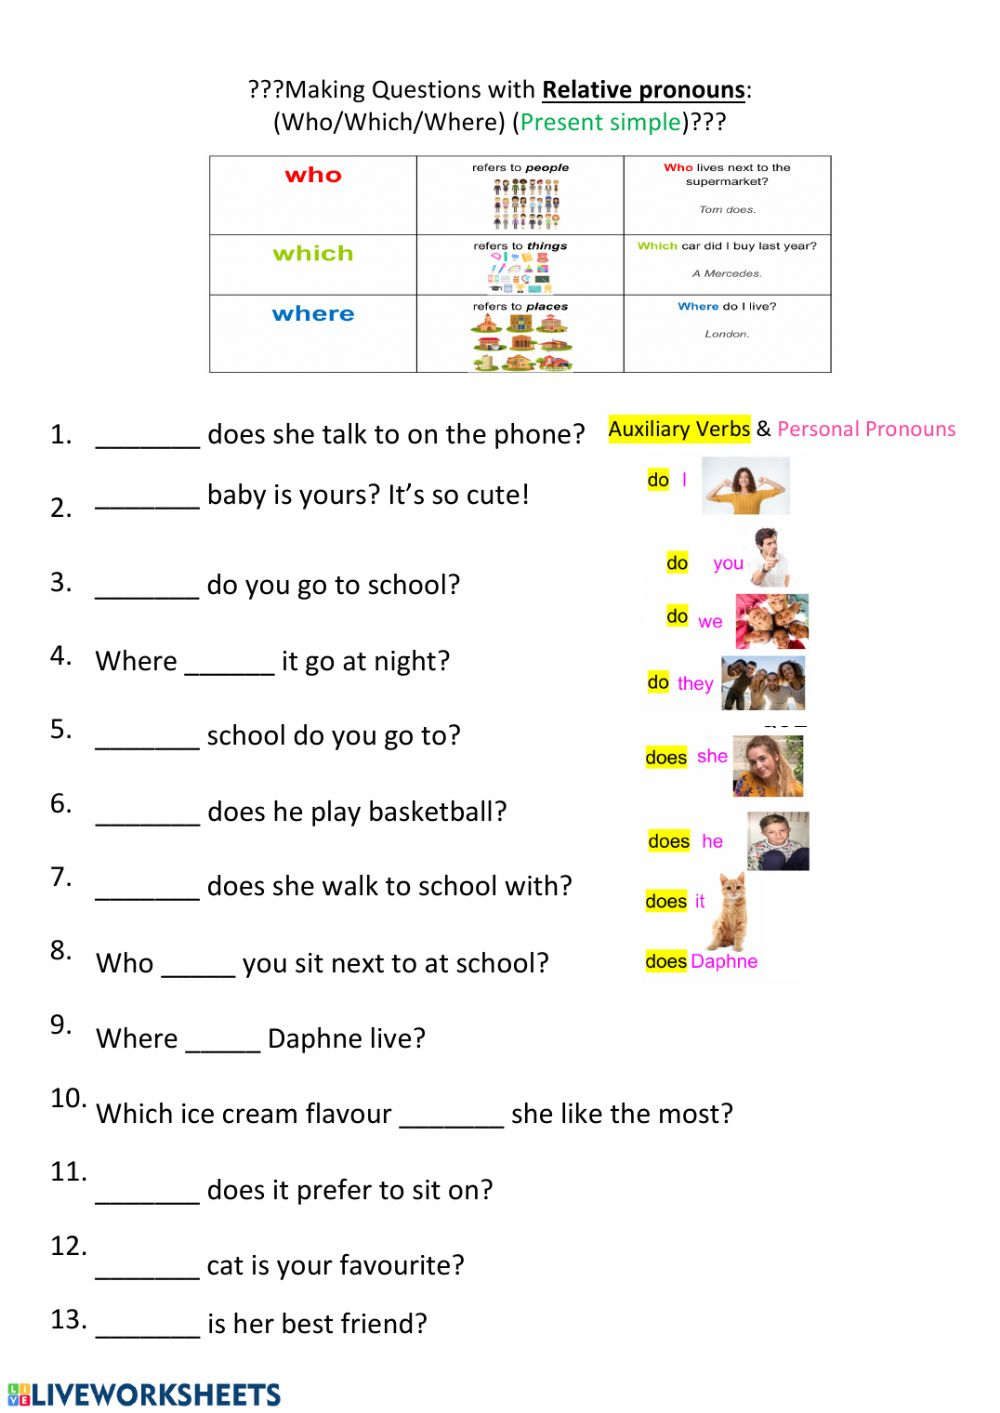 hight resolution of Relative pronoun questions (which-where-who) worksheet